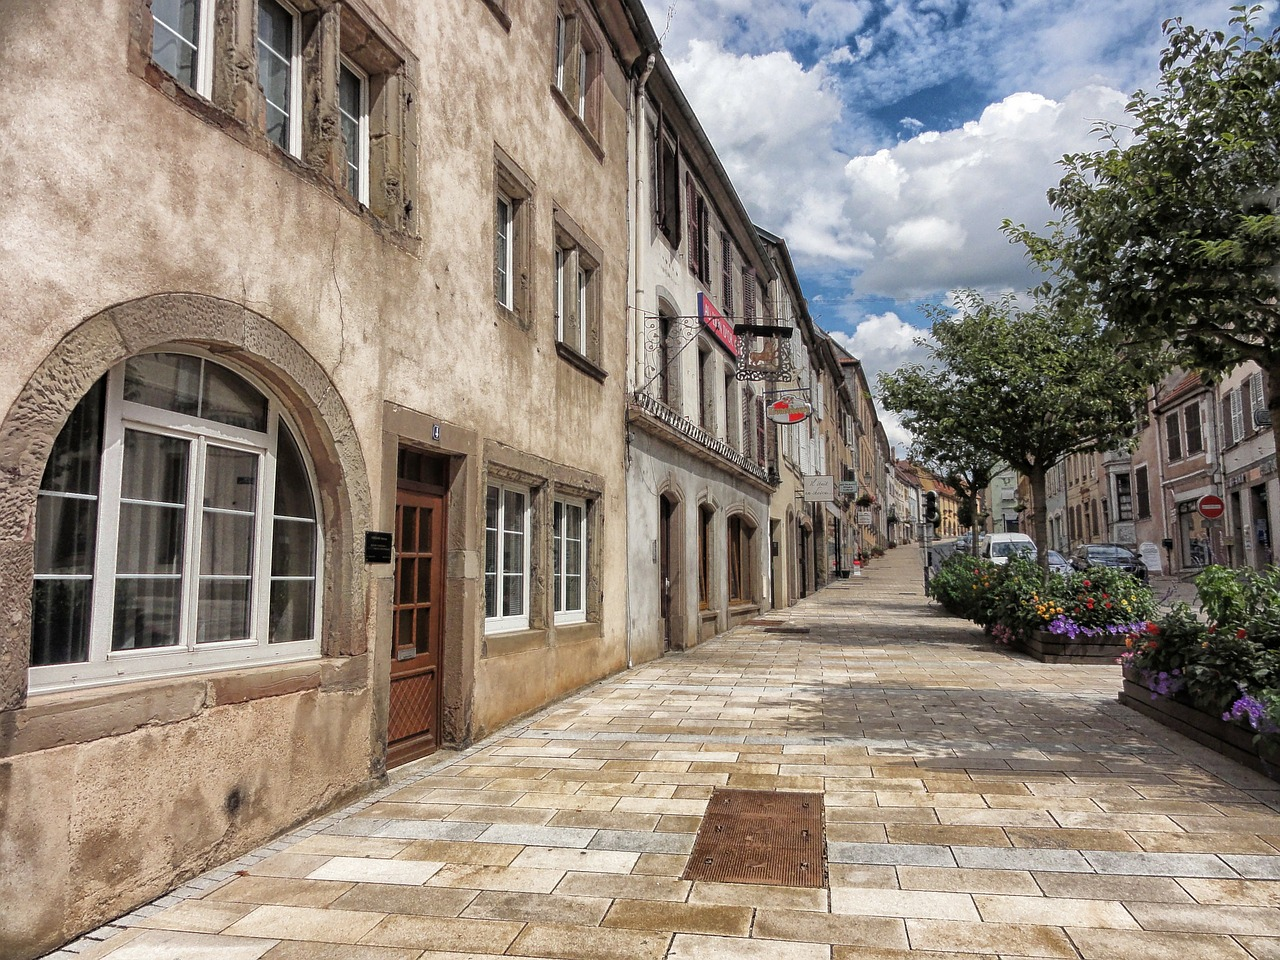 sarre-union france town free photo